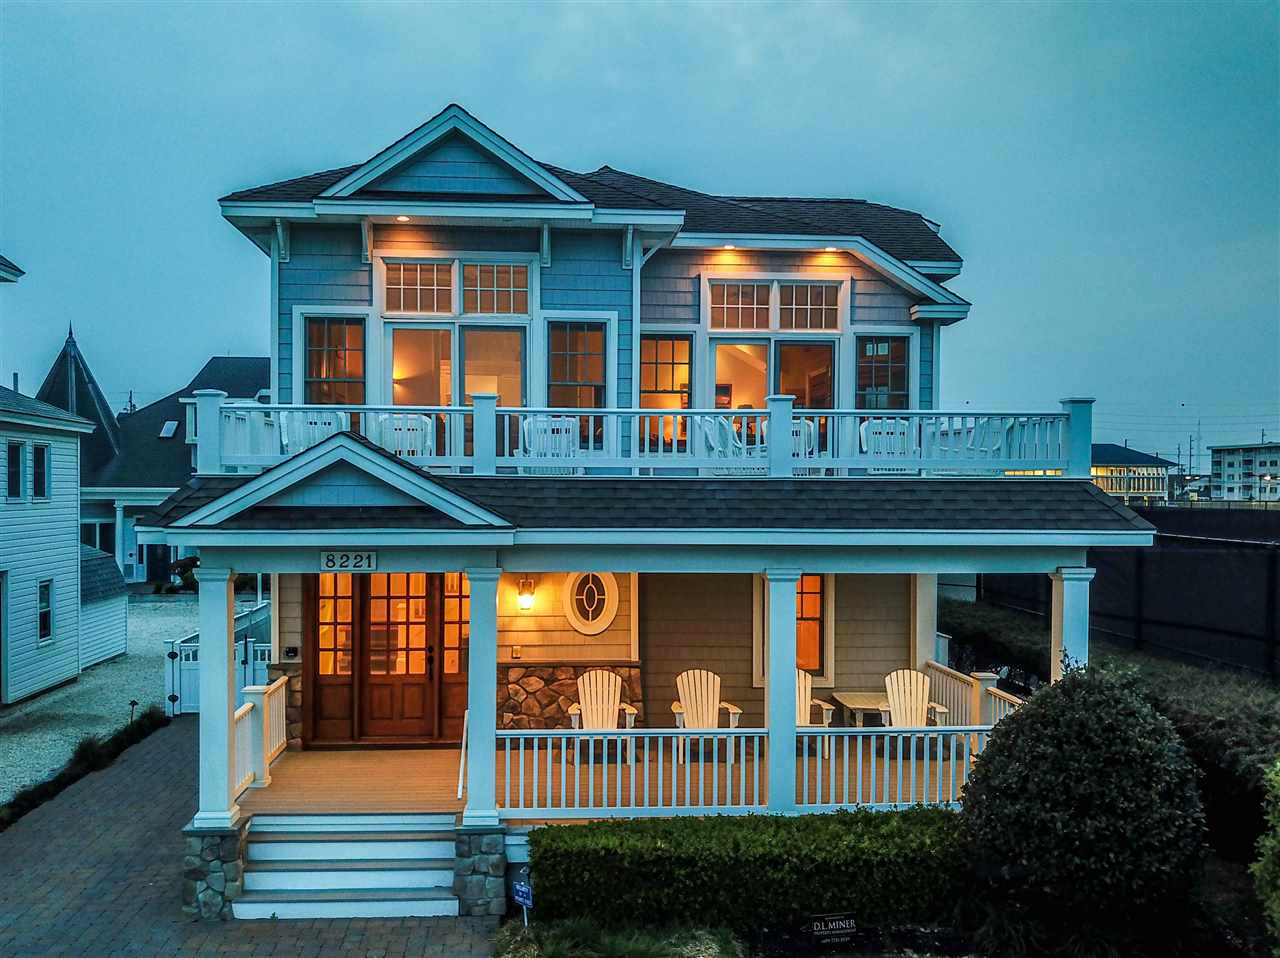 8221 First, Stone Harbor, NJ 08247